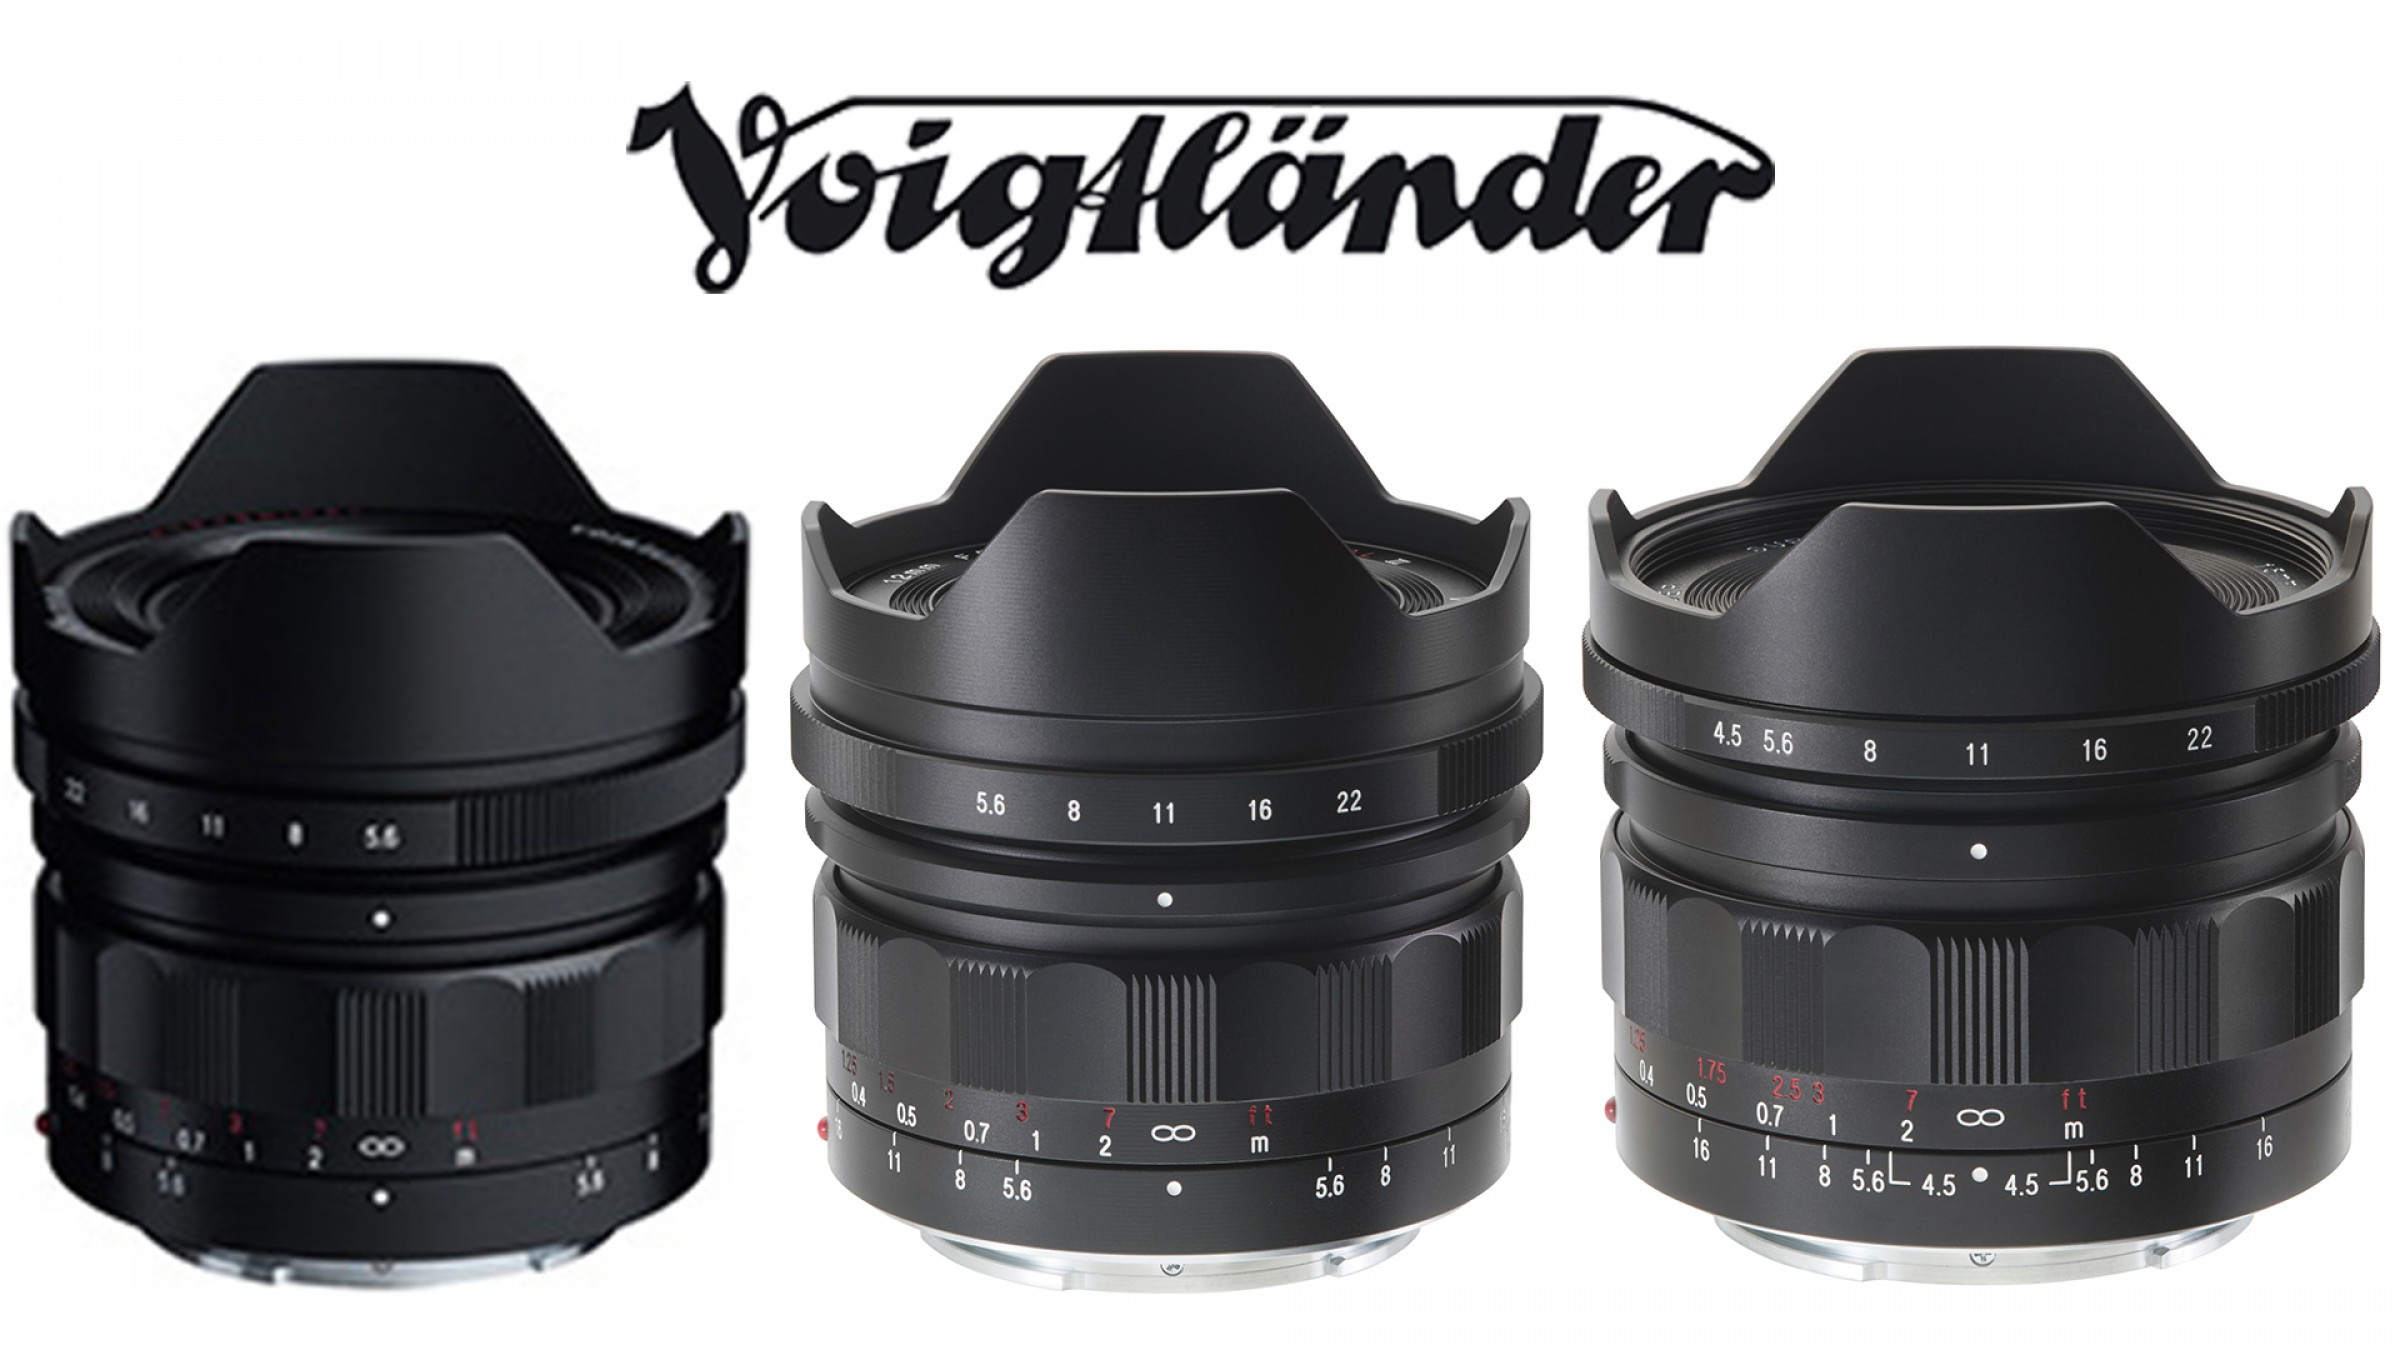 Voigtländer Has Three New Insanely-Wide Full-Frame E-Mount Lenses ...